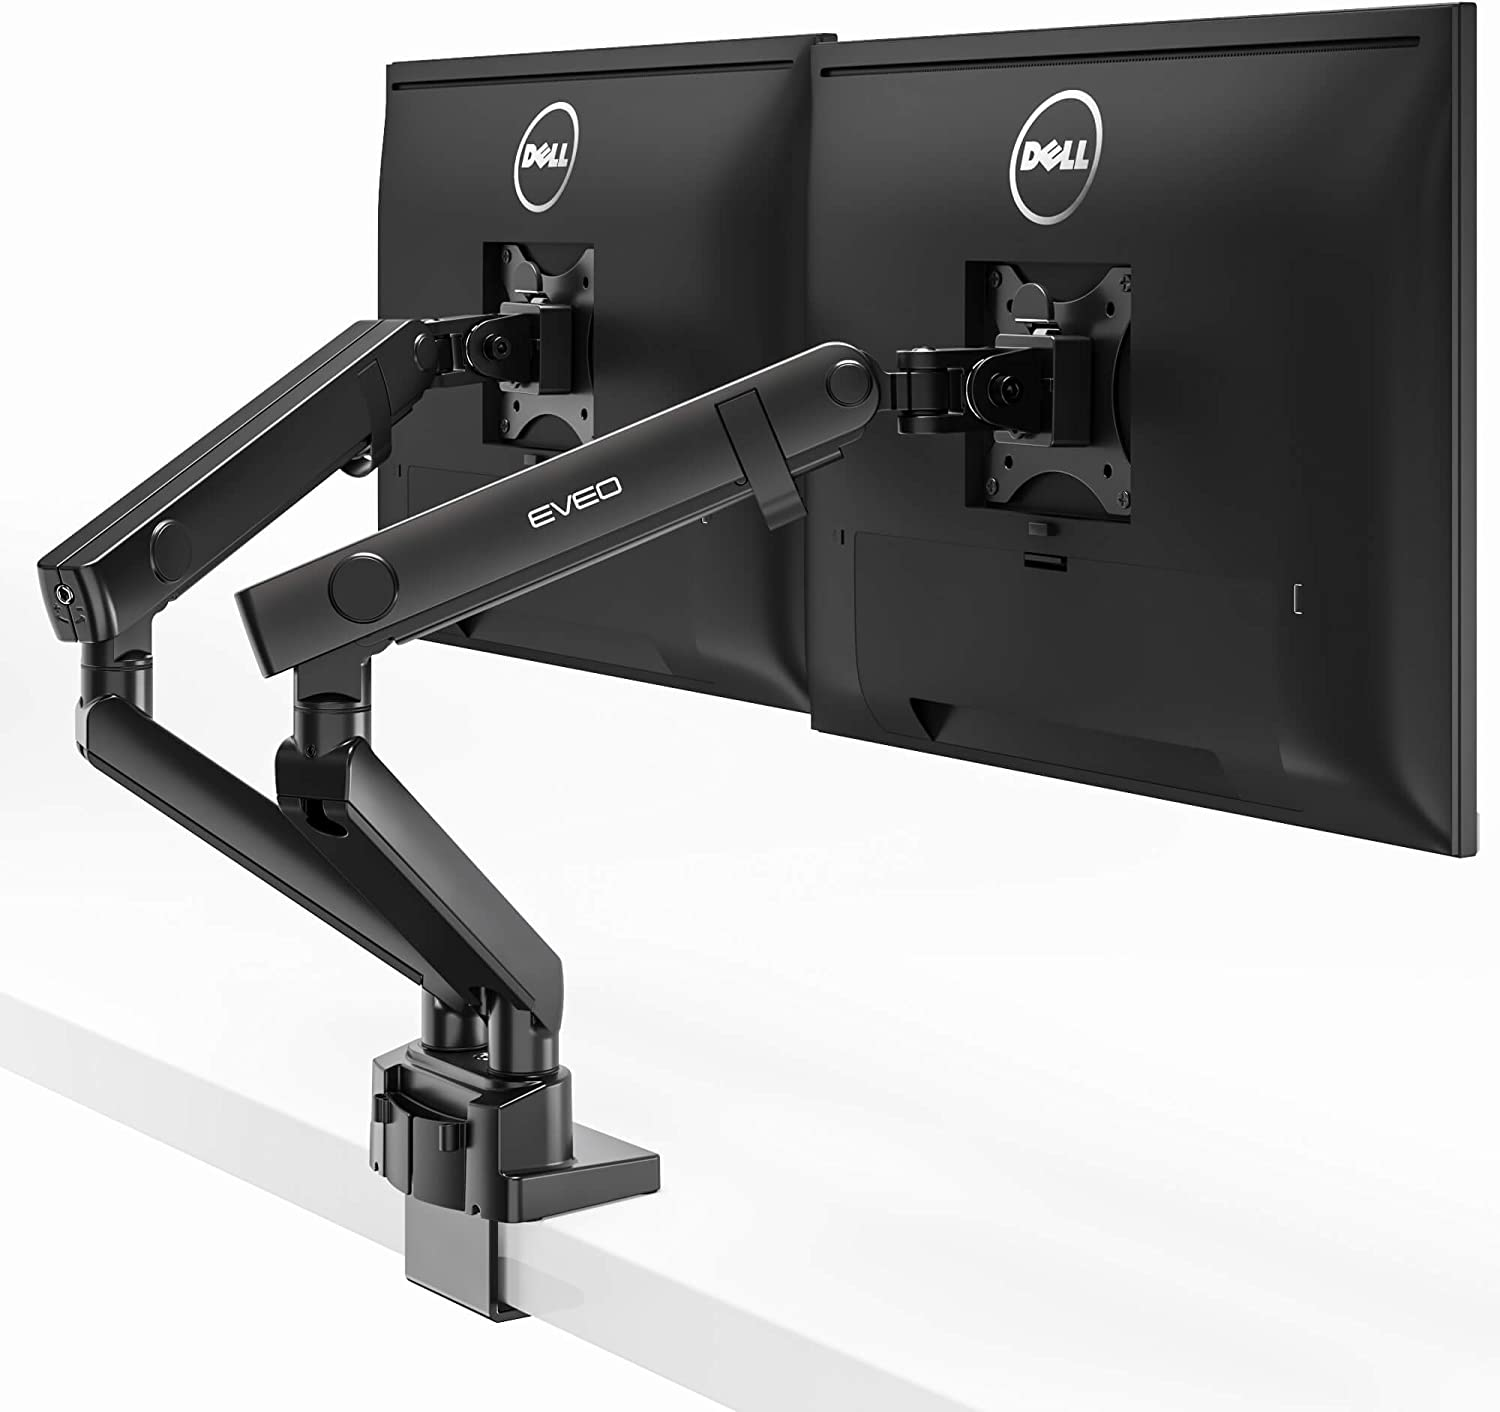 Dual Monitor Stand - Dual Monitor Mount